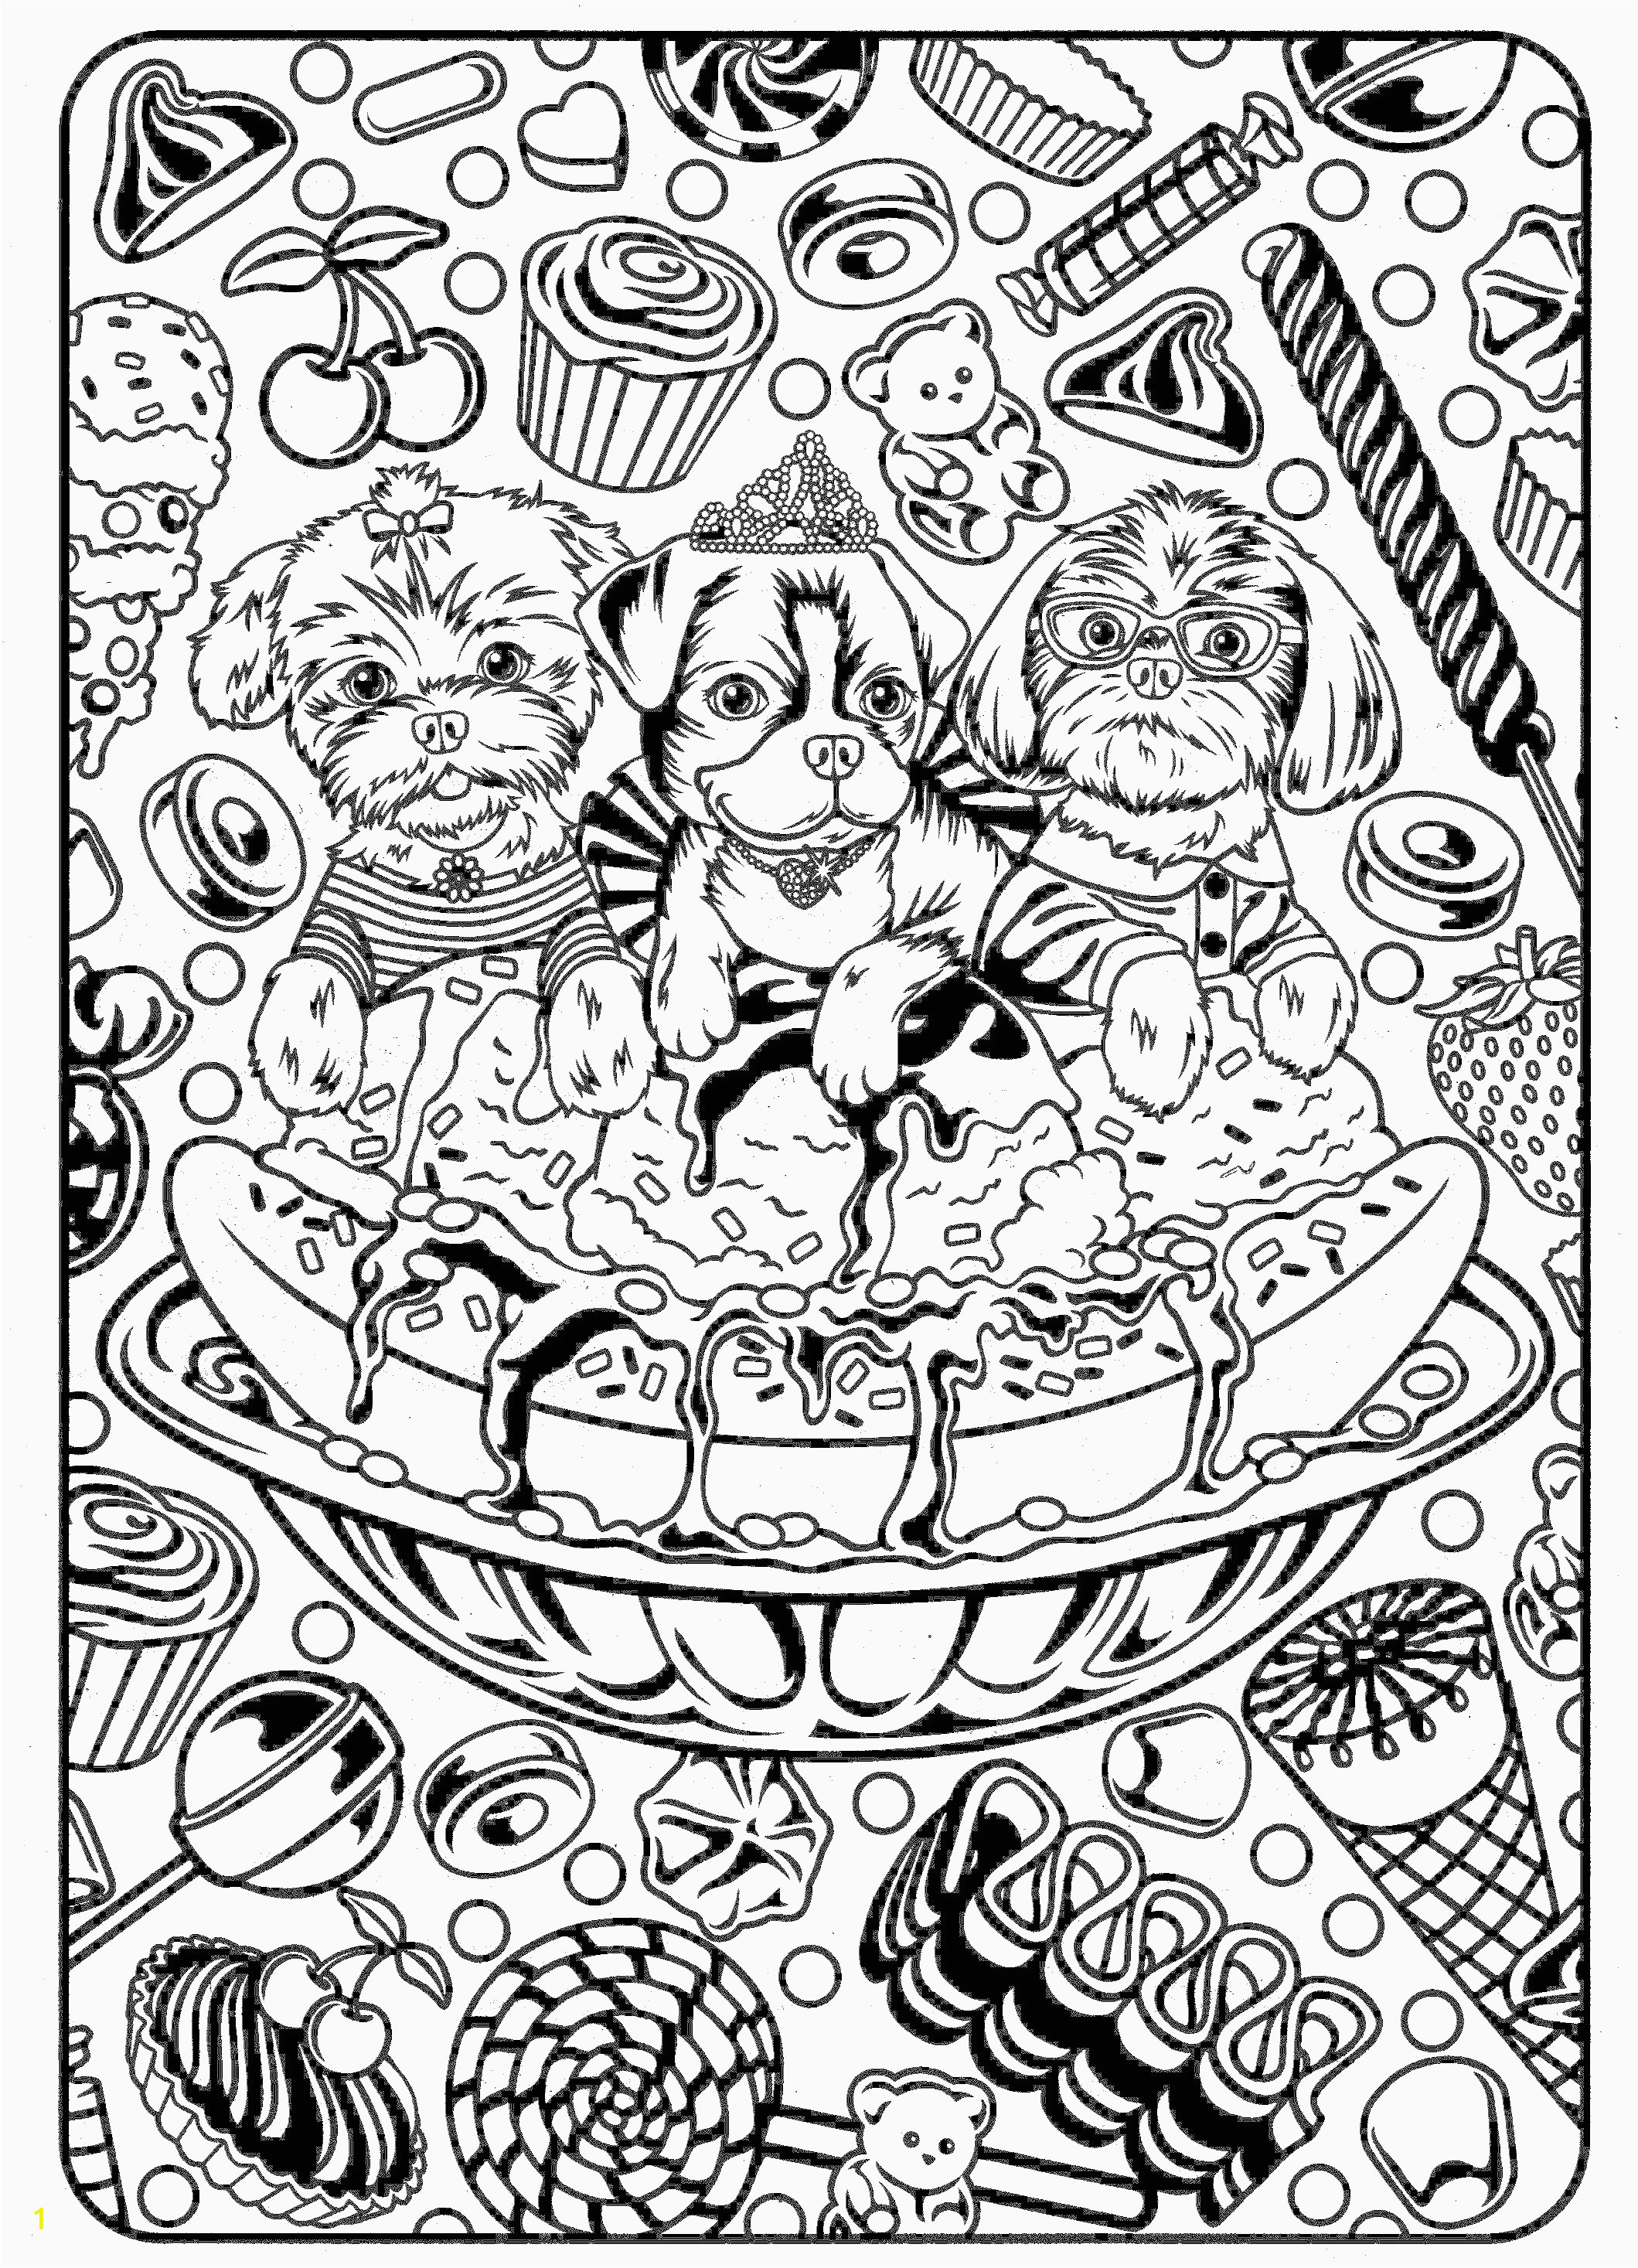 Planets Coloring Pages Best Coloring Pages Inspirational Crayola Pages 0d Archives Se – Fun Time